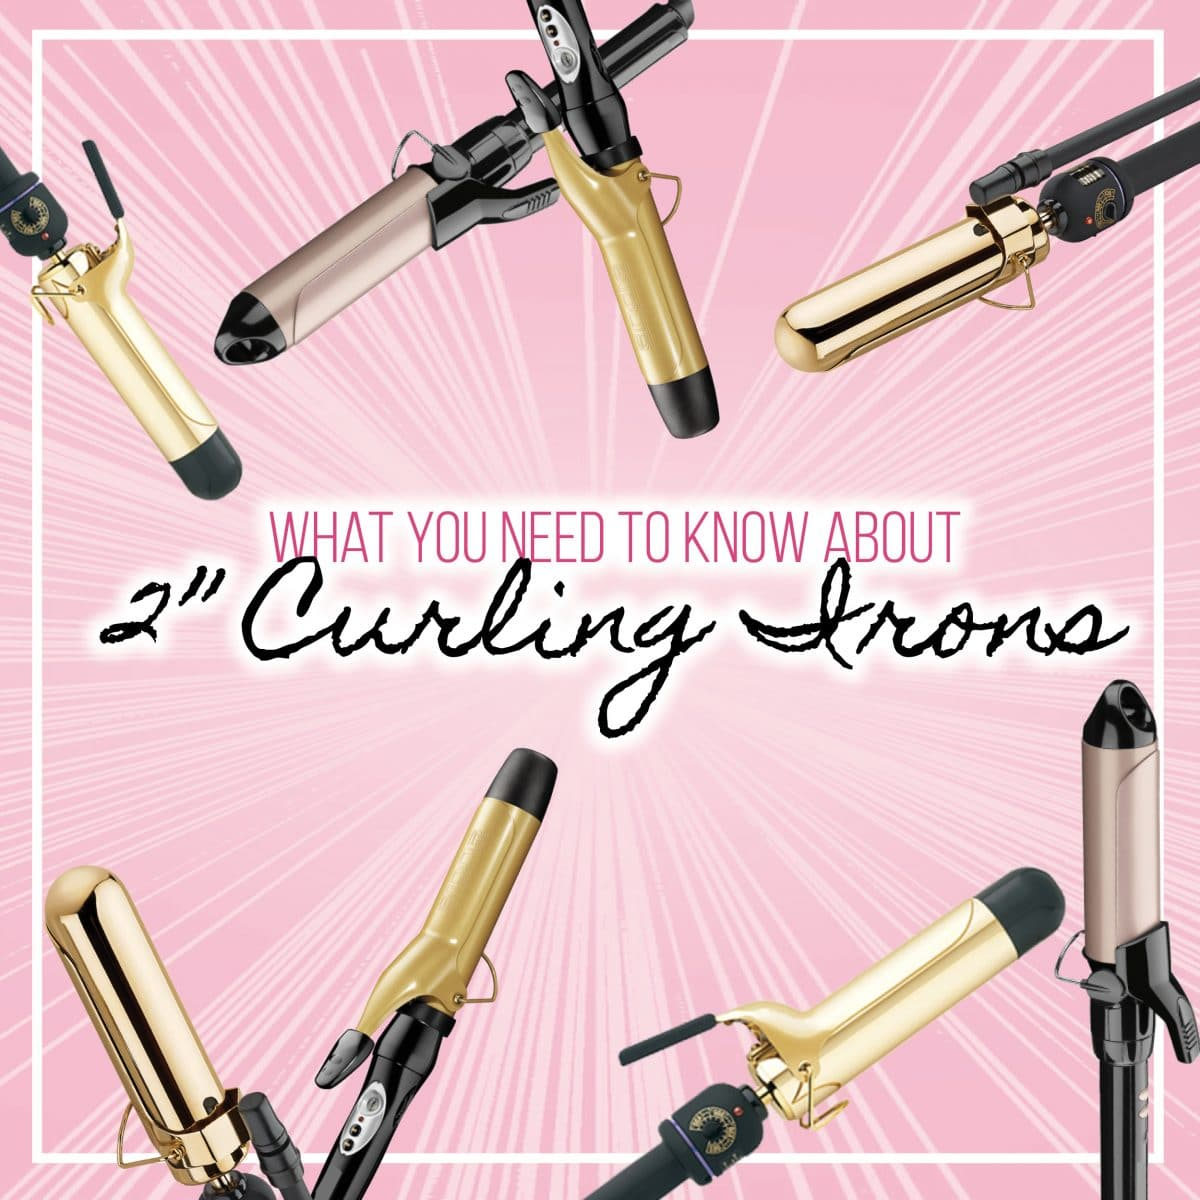 2 inch curling iron guide #hairtutorials #hair #haircare #guide #hairtips #hairtrend #hairaccessories #hairenvy #hairhowto #hairideas #hairproducts #hairtalk #hairtutorial #hairspiration #hairstyle #hairideas #hairstyleideas